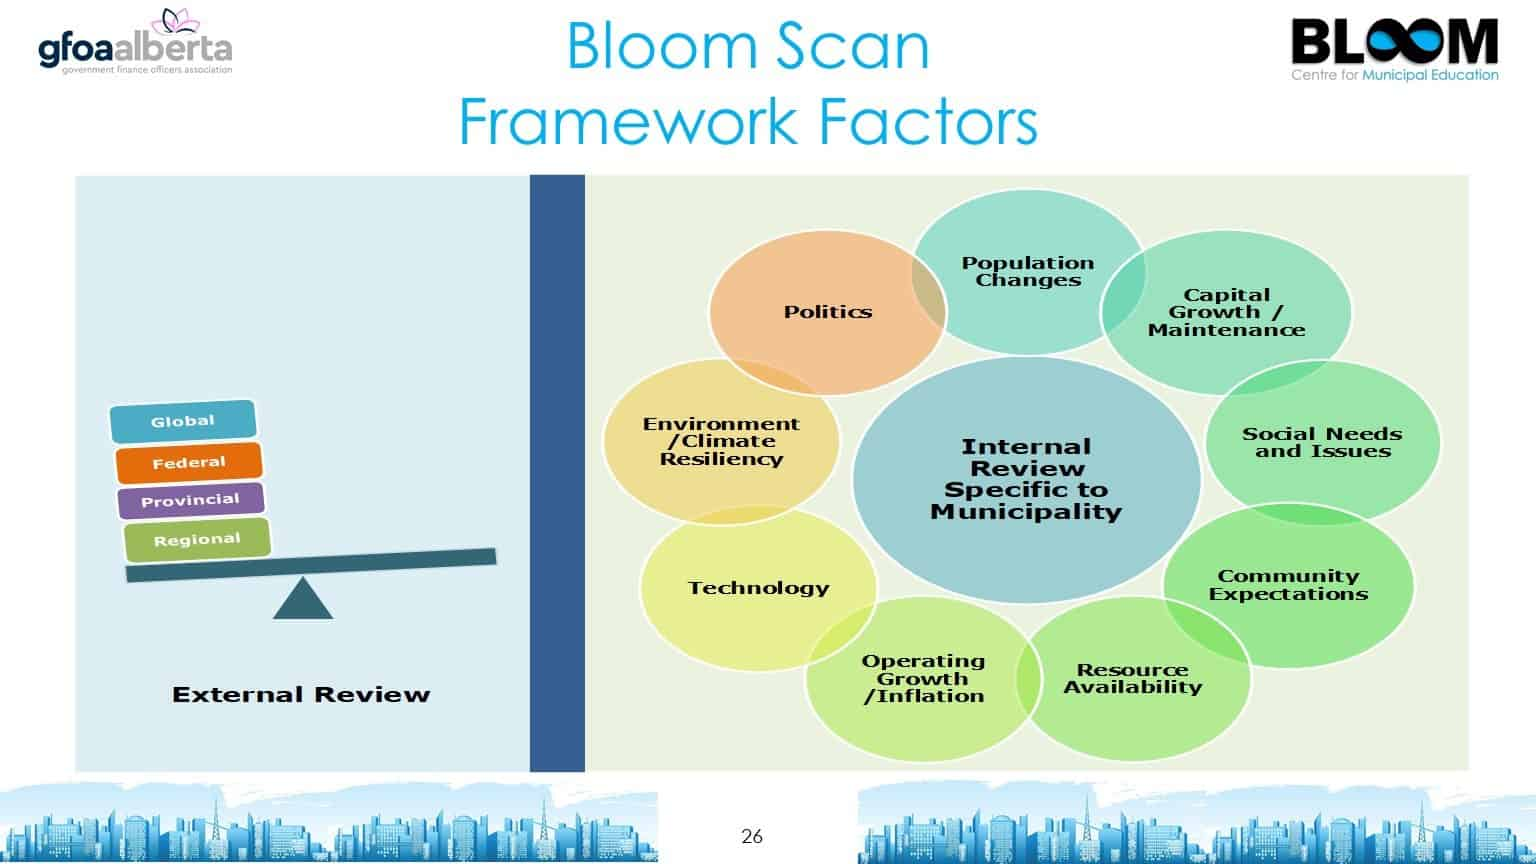 Bloom Scan Framework Factors